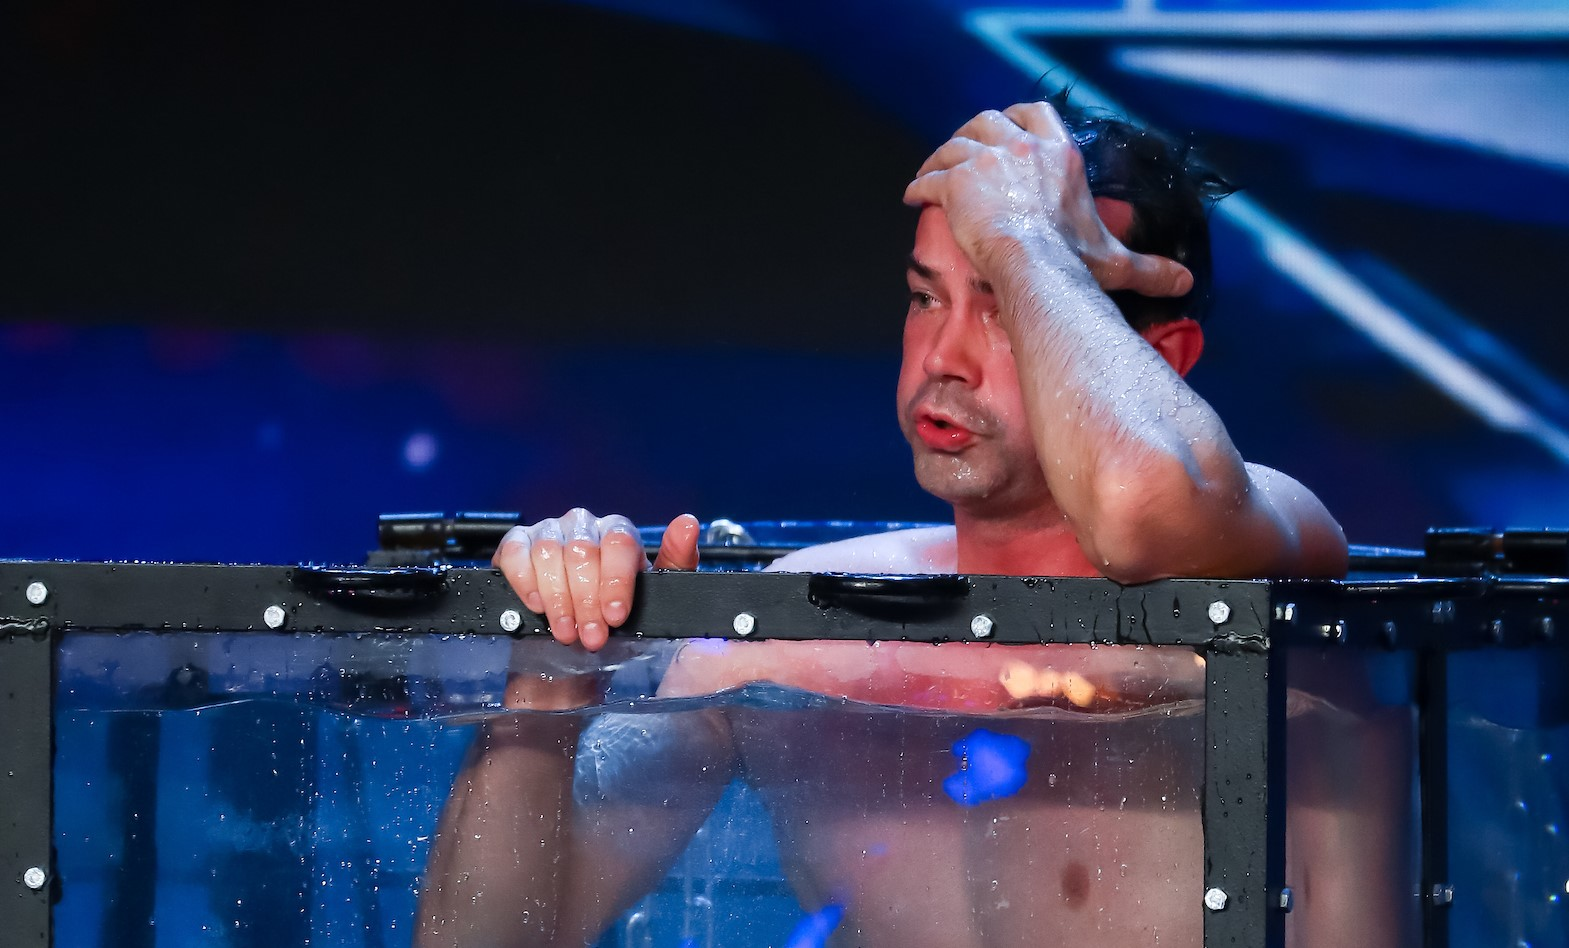 Britain's Got Talent fans insist 'this is not entertainment' as man nearly drowns during live act